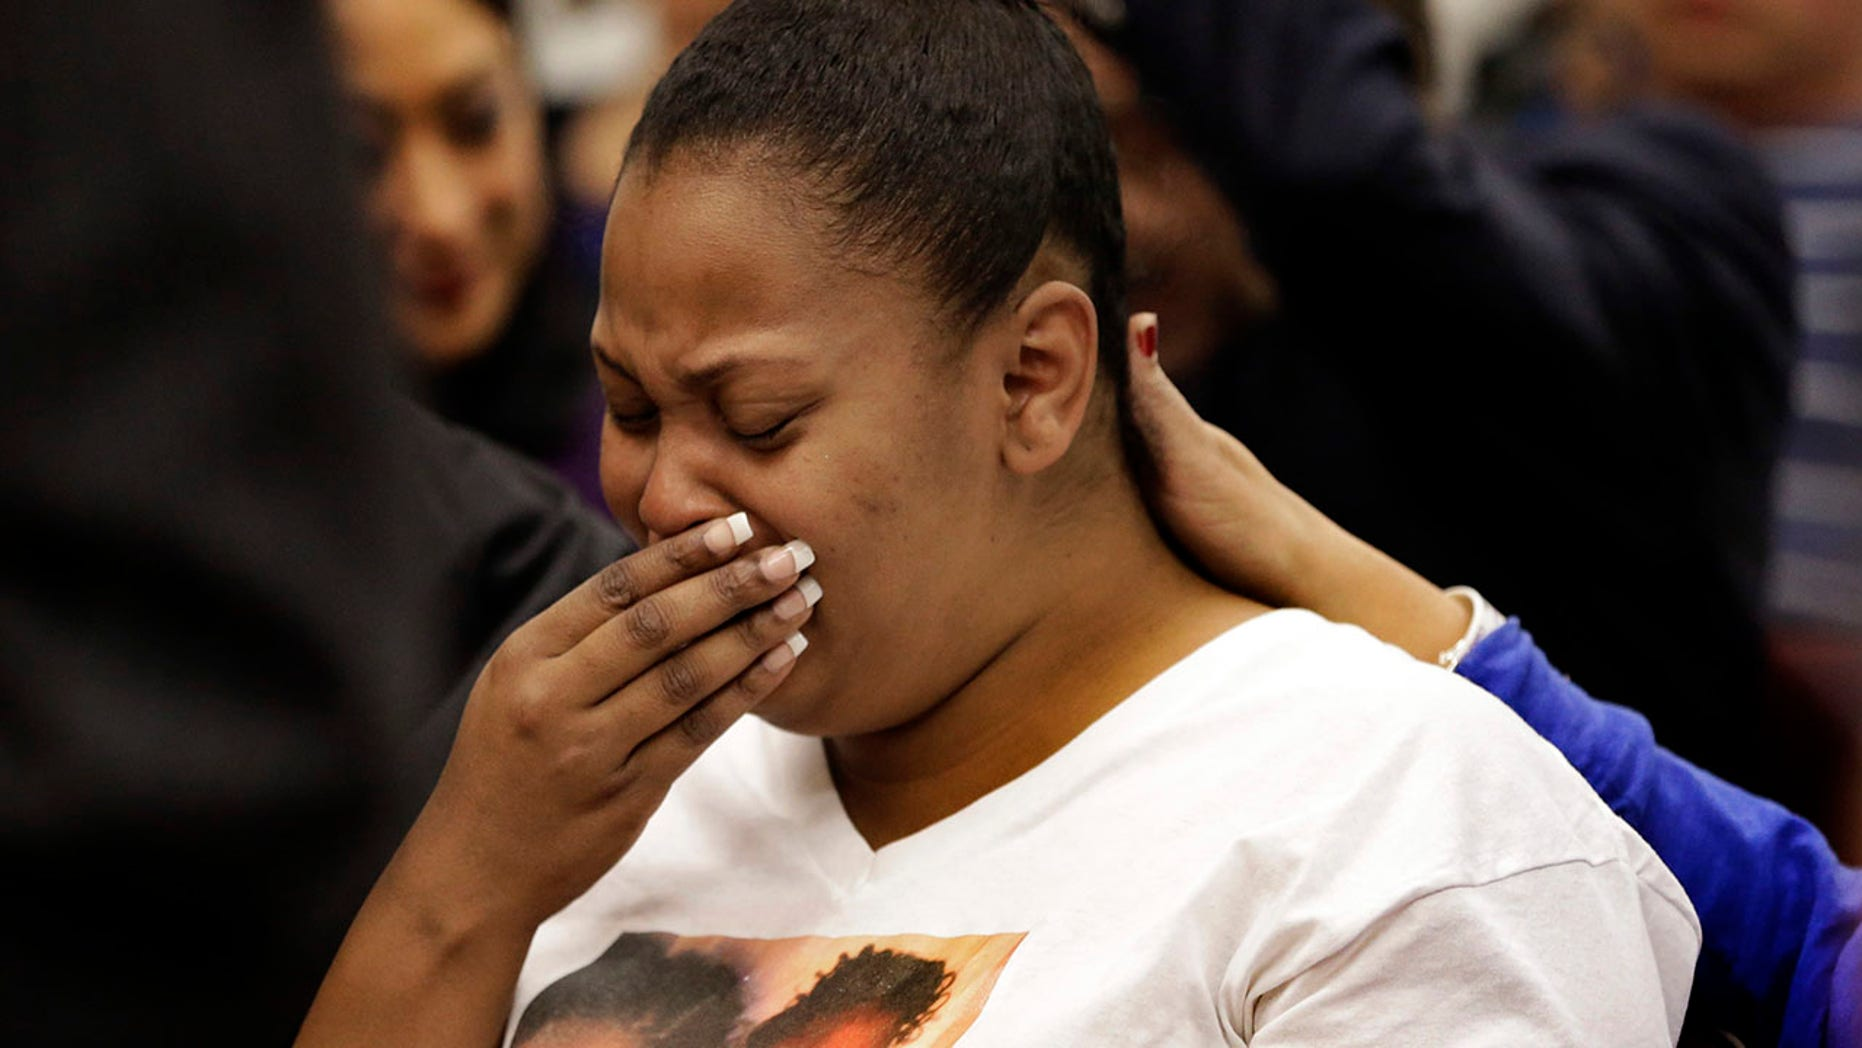 Dec. 13, 2013: In this file photo, Nailah Winkfield, mother of 13-year-old Jahi McMath, cries before a courtroom hearing regarding McMath, in Oakland, Calif.